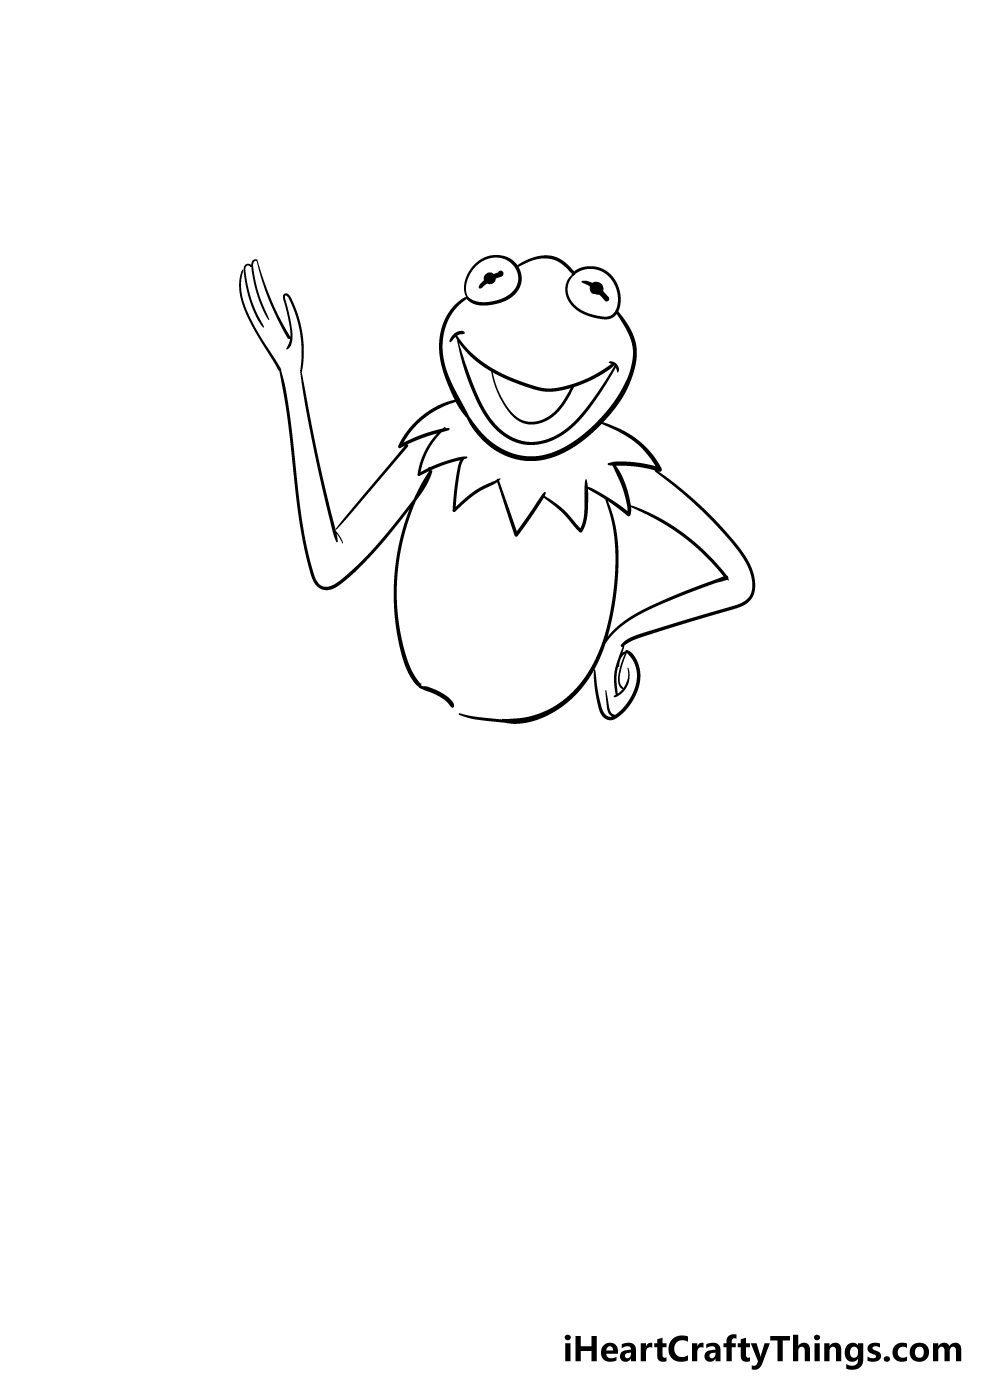 drawing Kermit the frog step 5